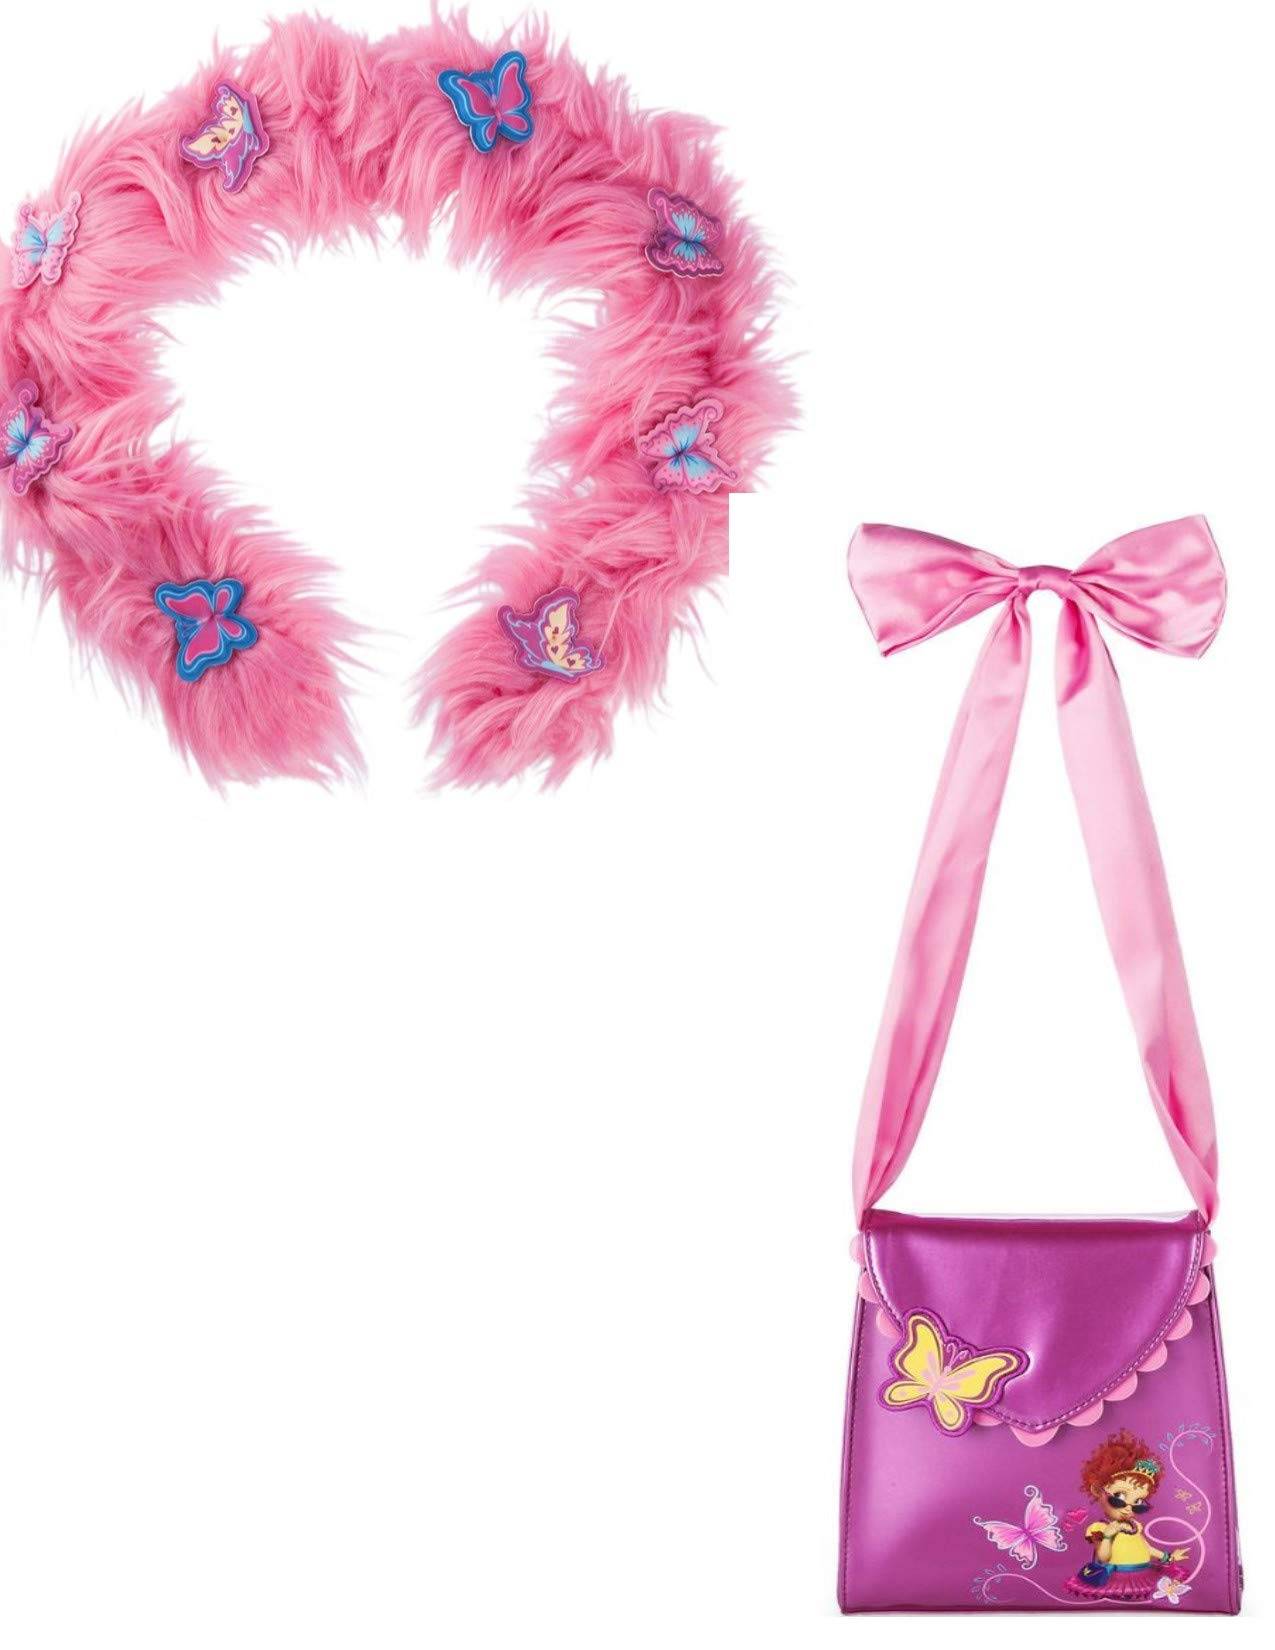 Fancy Nancy Boa and Purse Faux Fur for Girls Disney Dress Up Costume Play